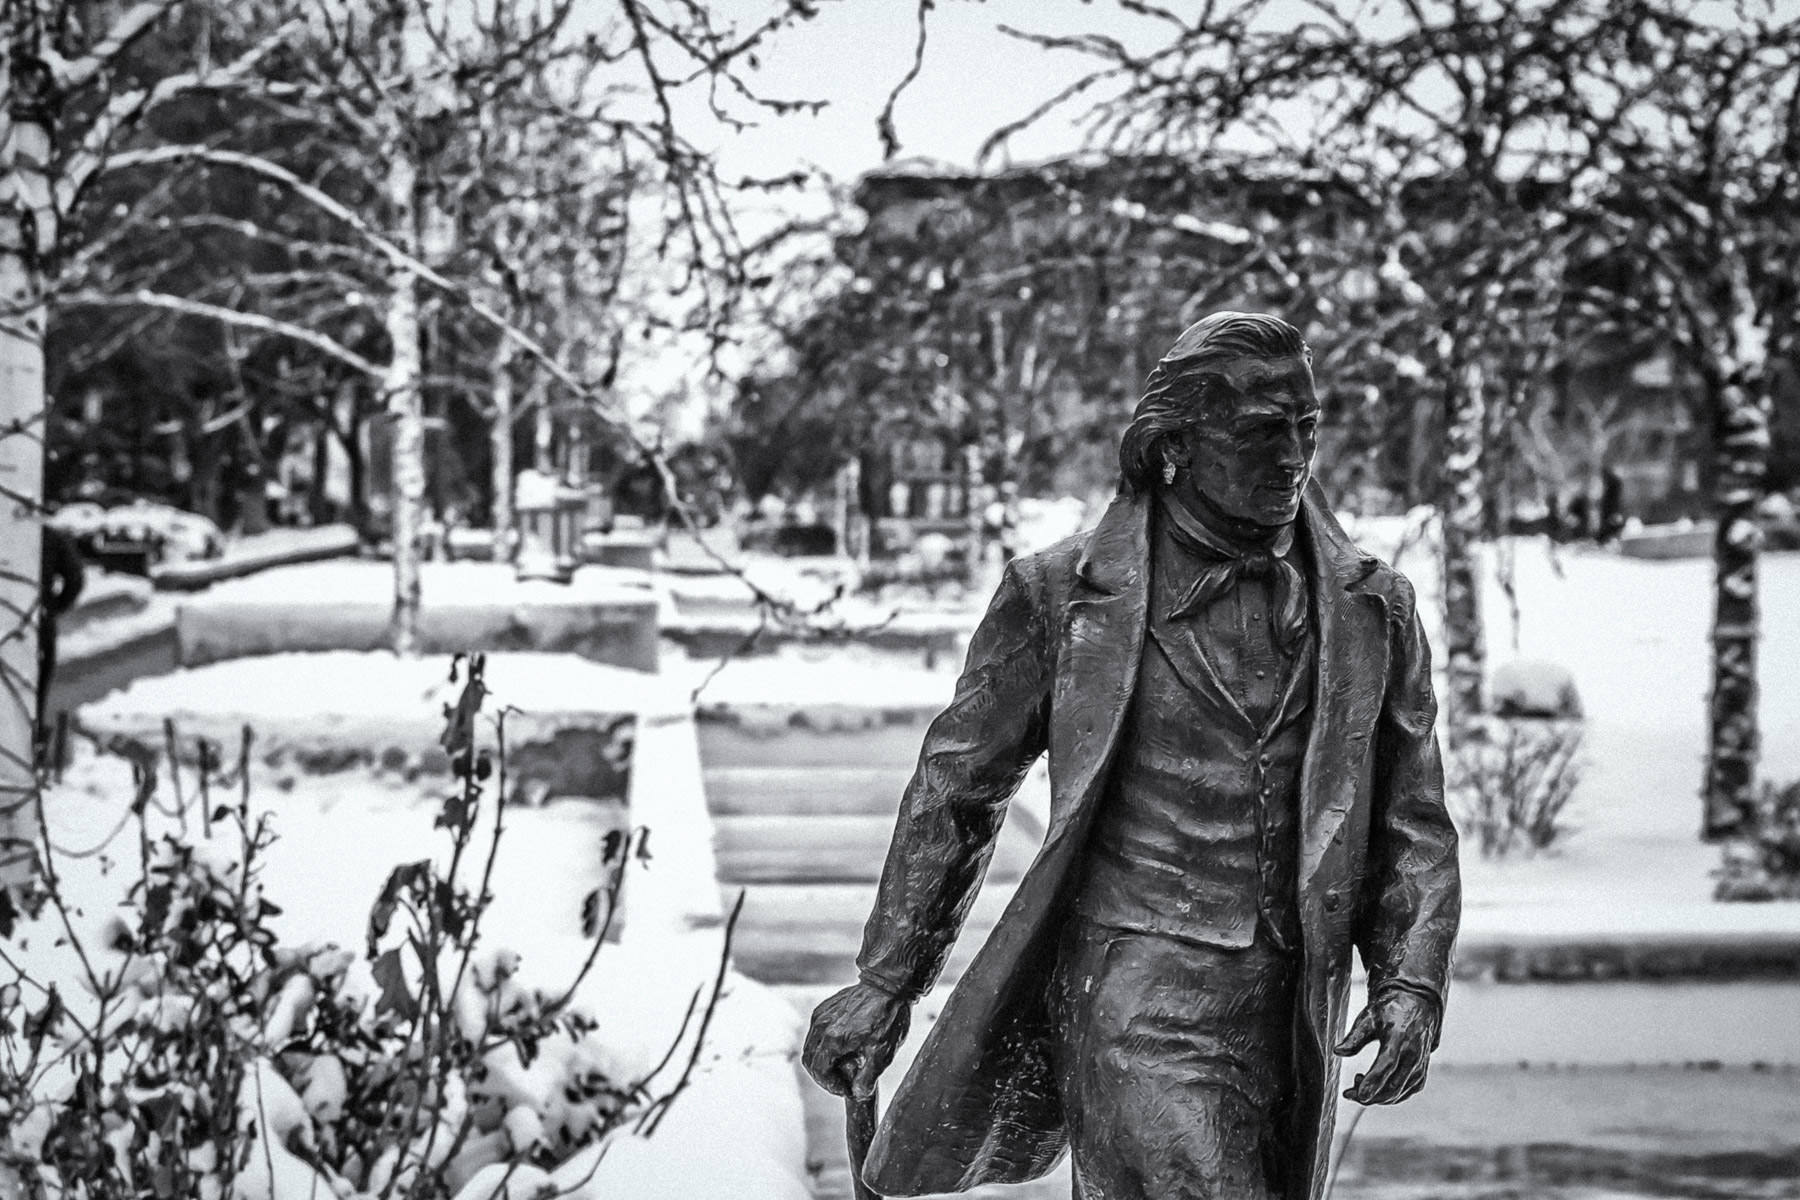 A statue spotted in Temple Square, Salt Lake City, Utah.